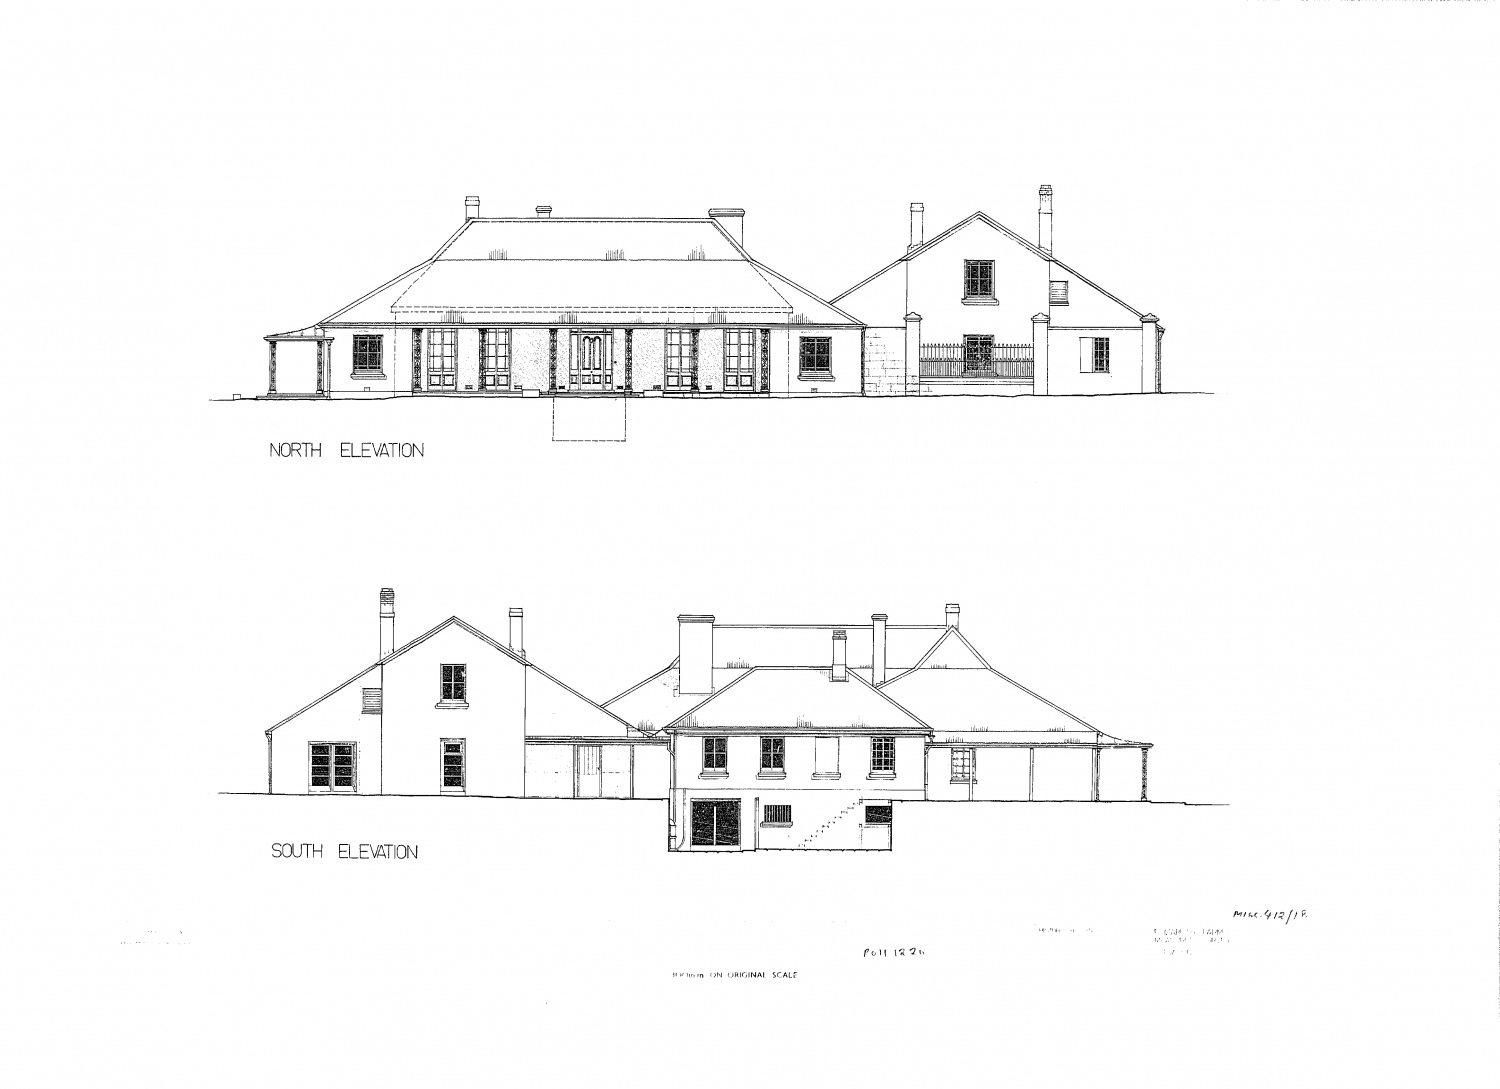 Detailed plan of building from front, with verandah detailed.